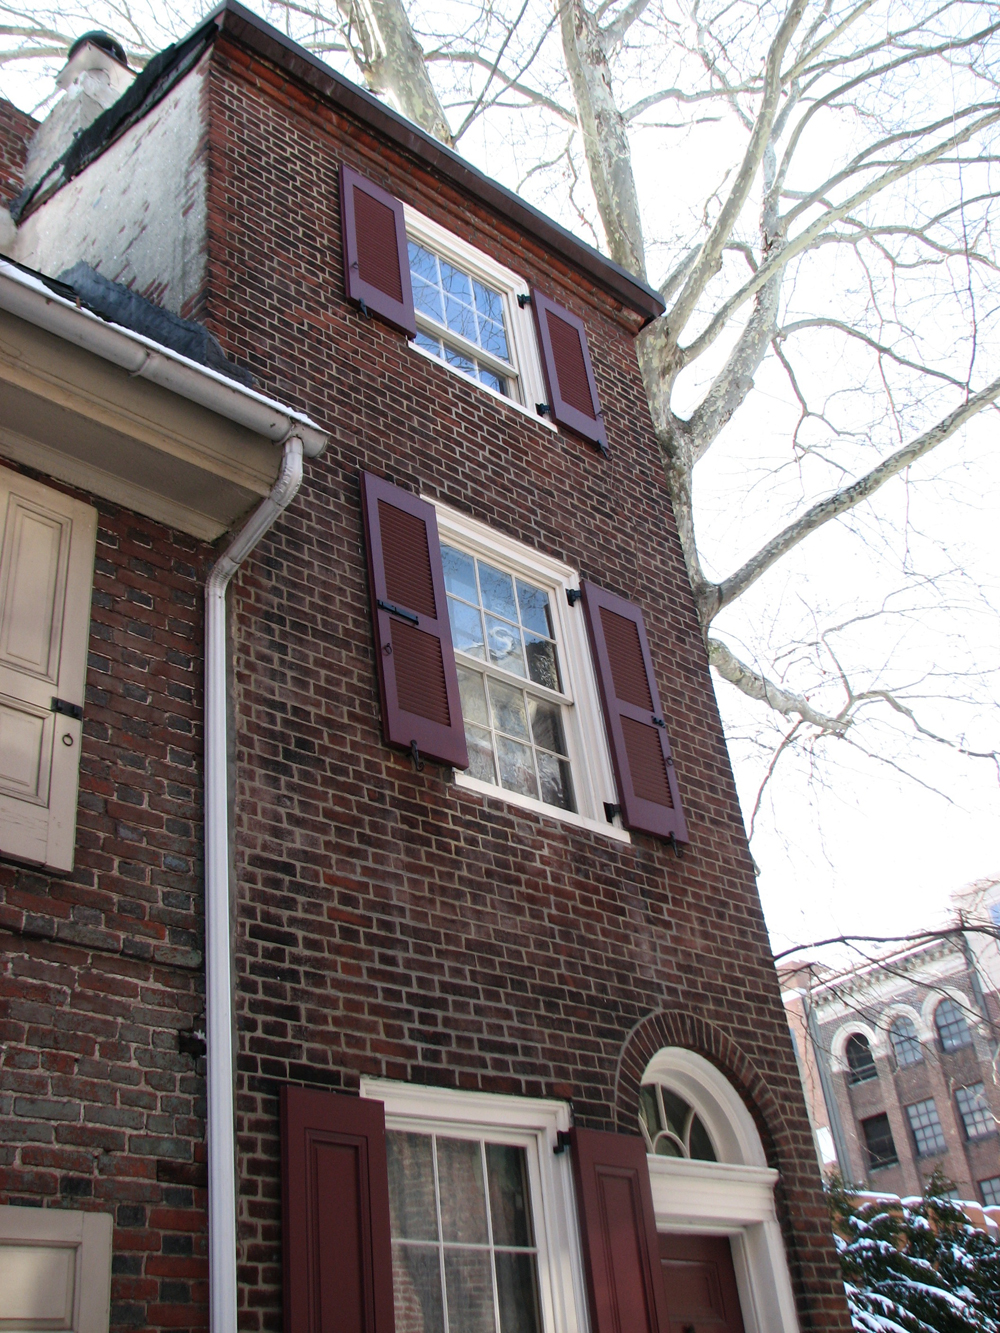 The narrow house at the end of the alley's south side is known as the Half House.